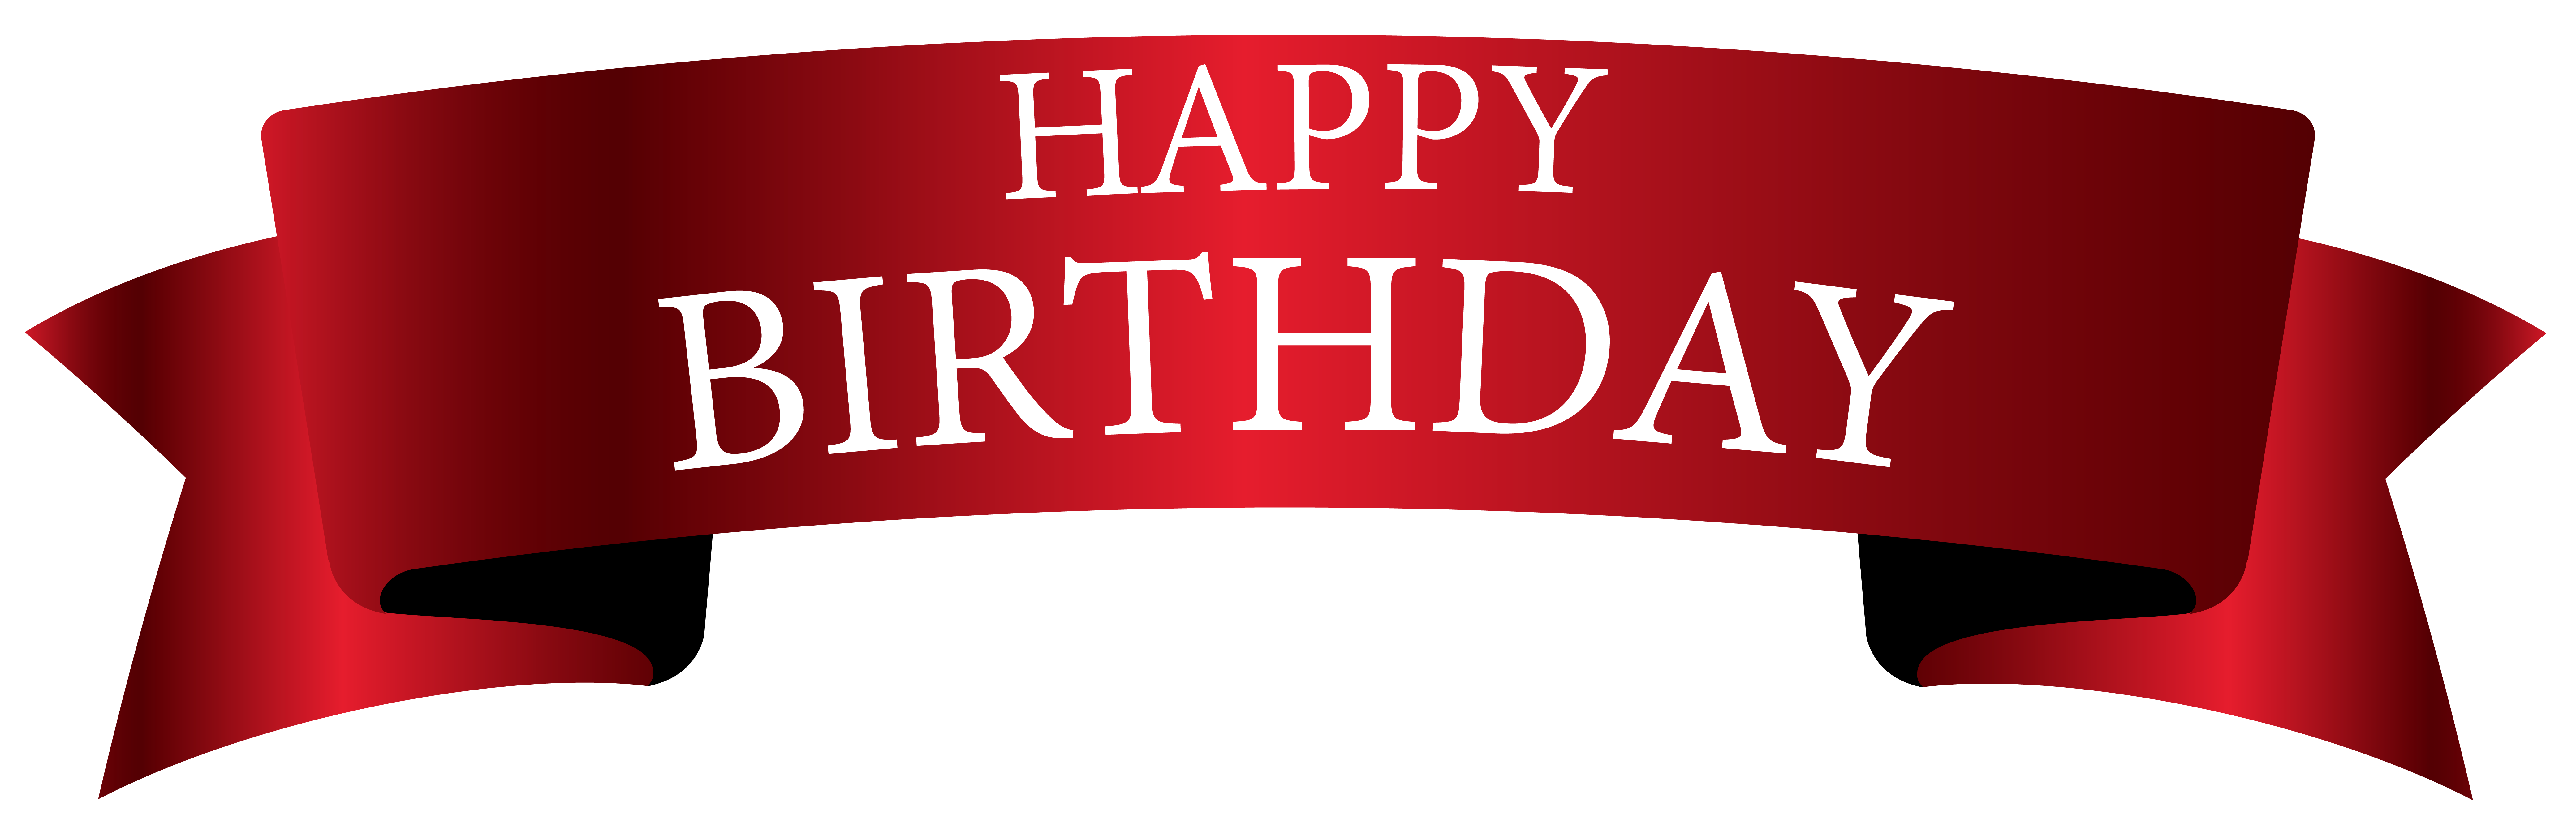 Happy birthday banner background png. Red clipart image gallery